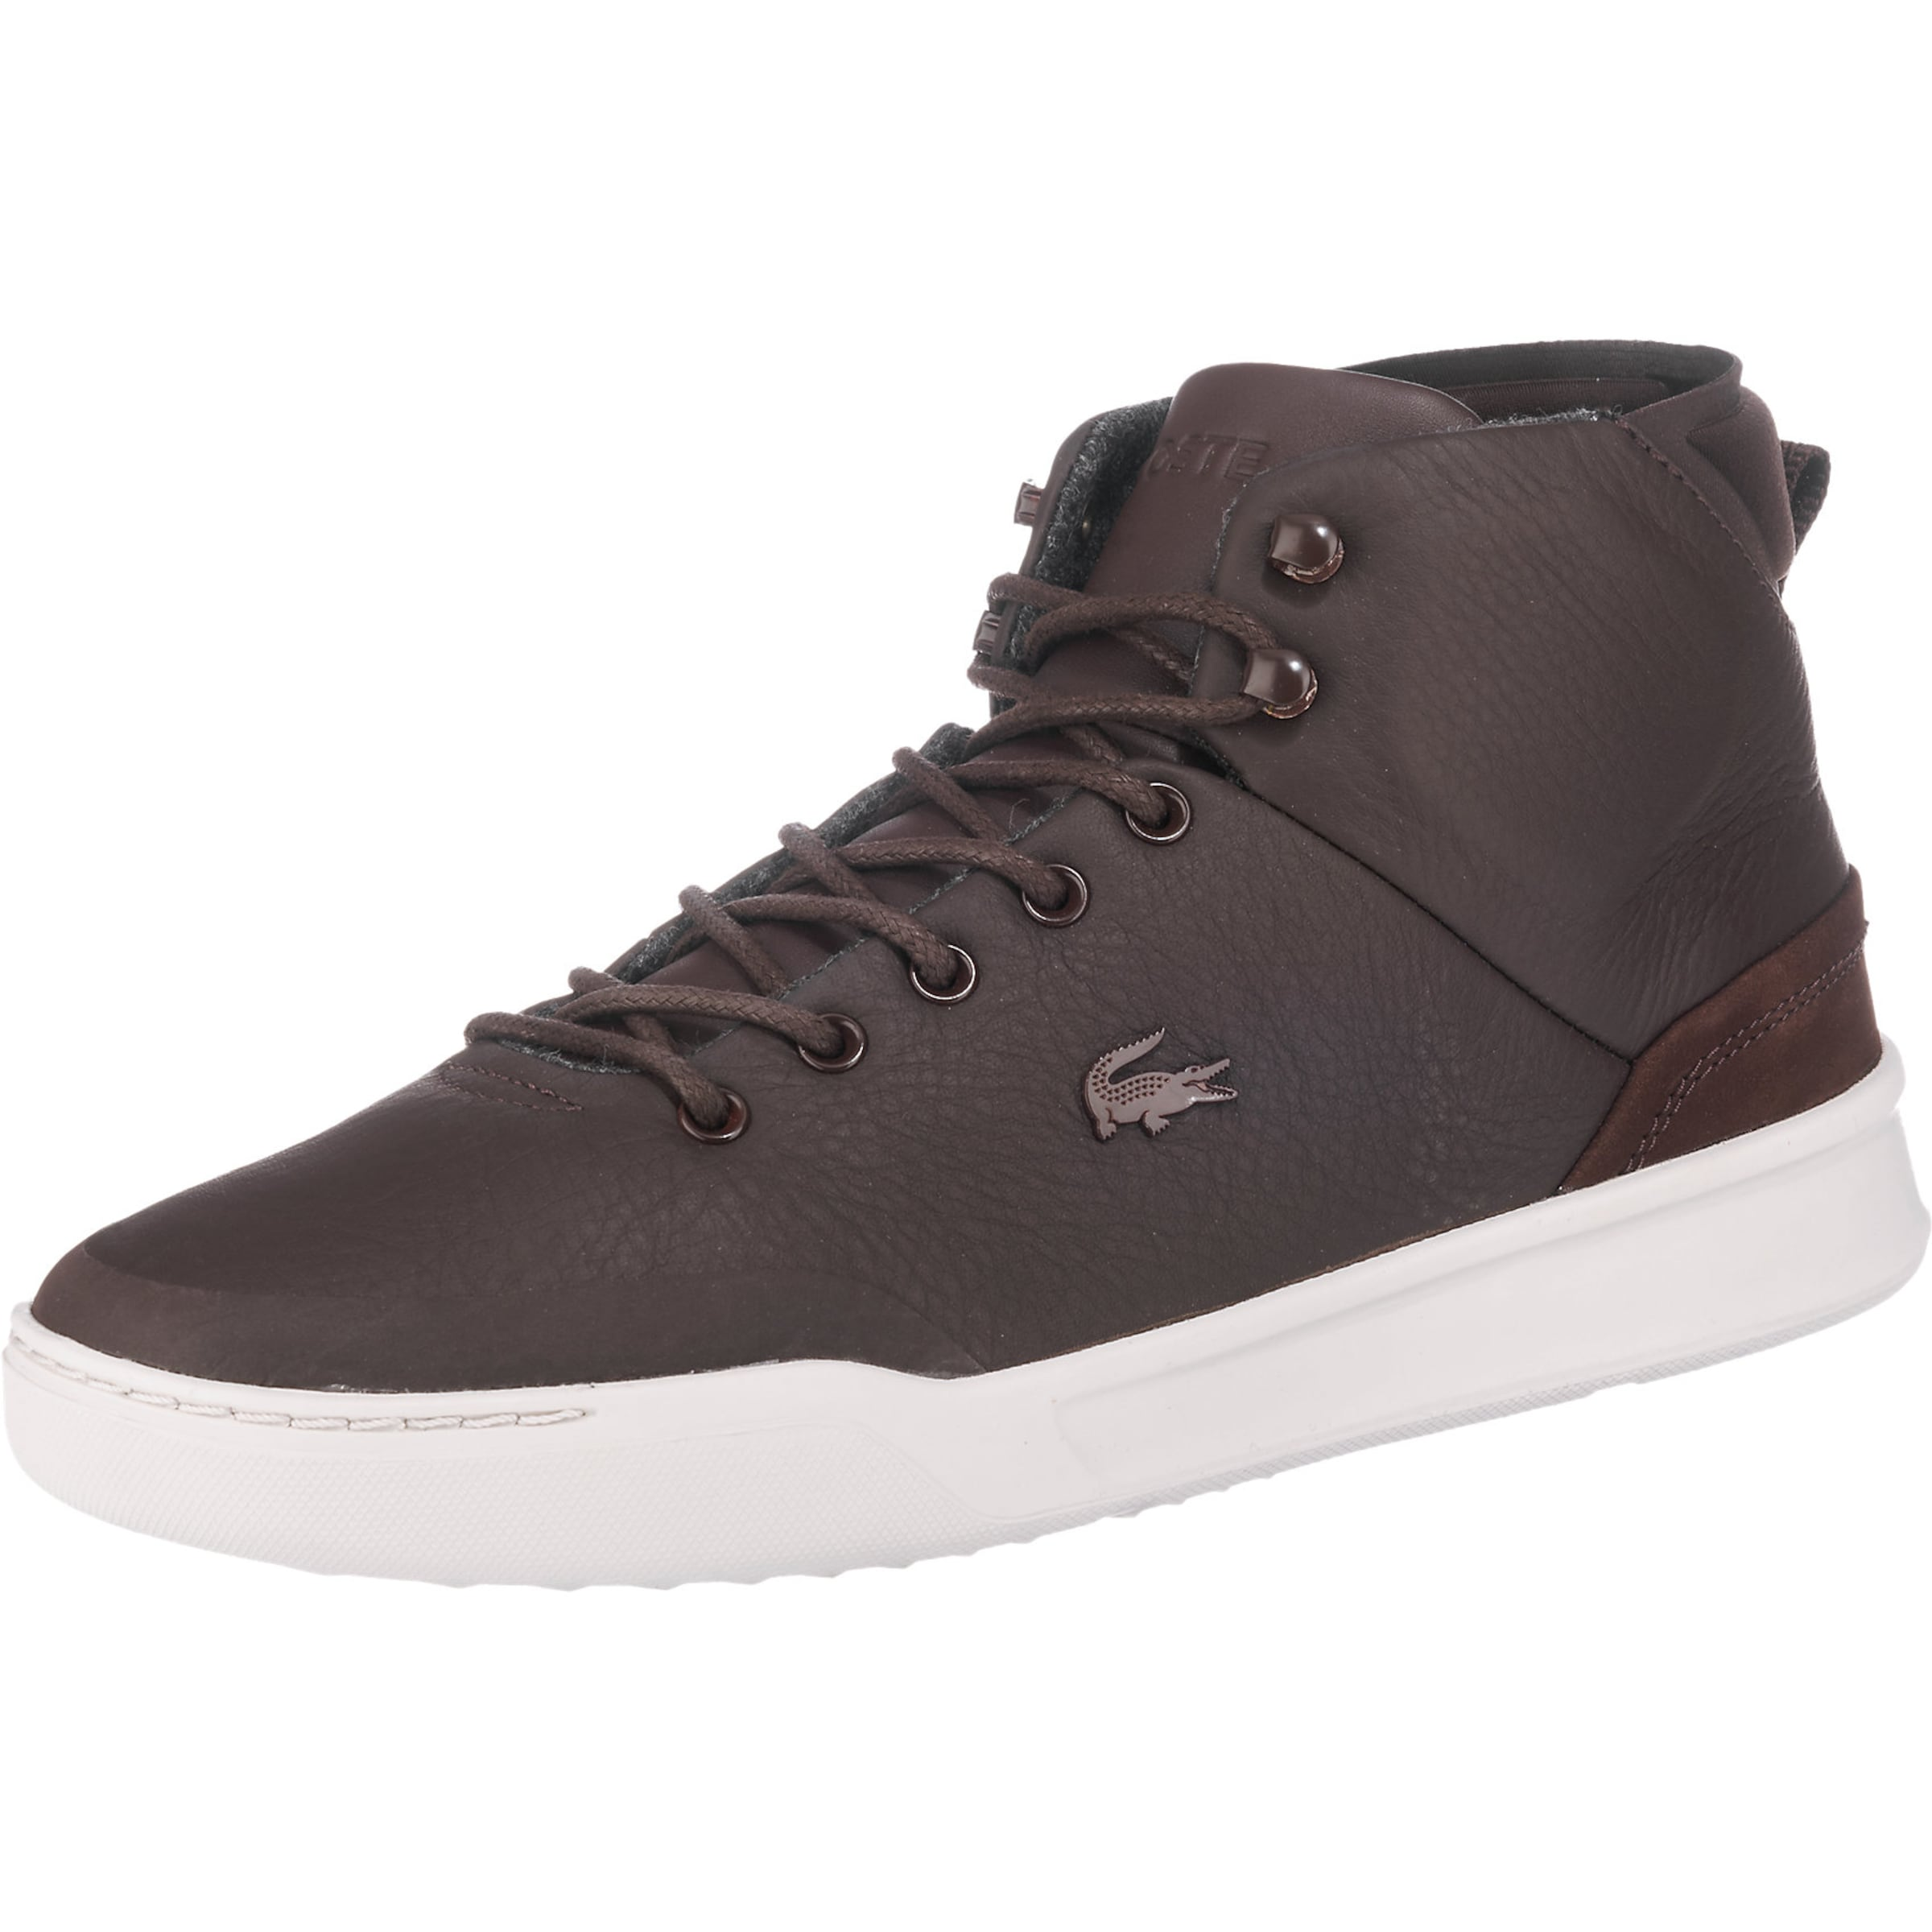 LACOSTE | Explorateur Clas Clas Explorateur 417 Sneakers b5c978